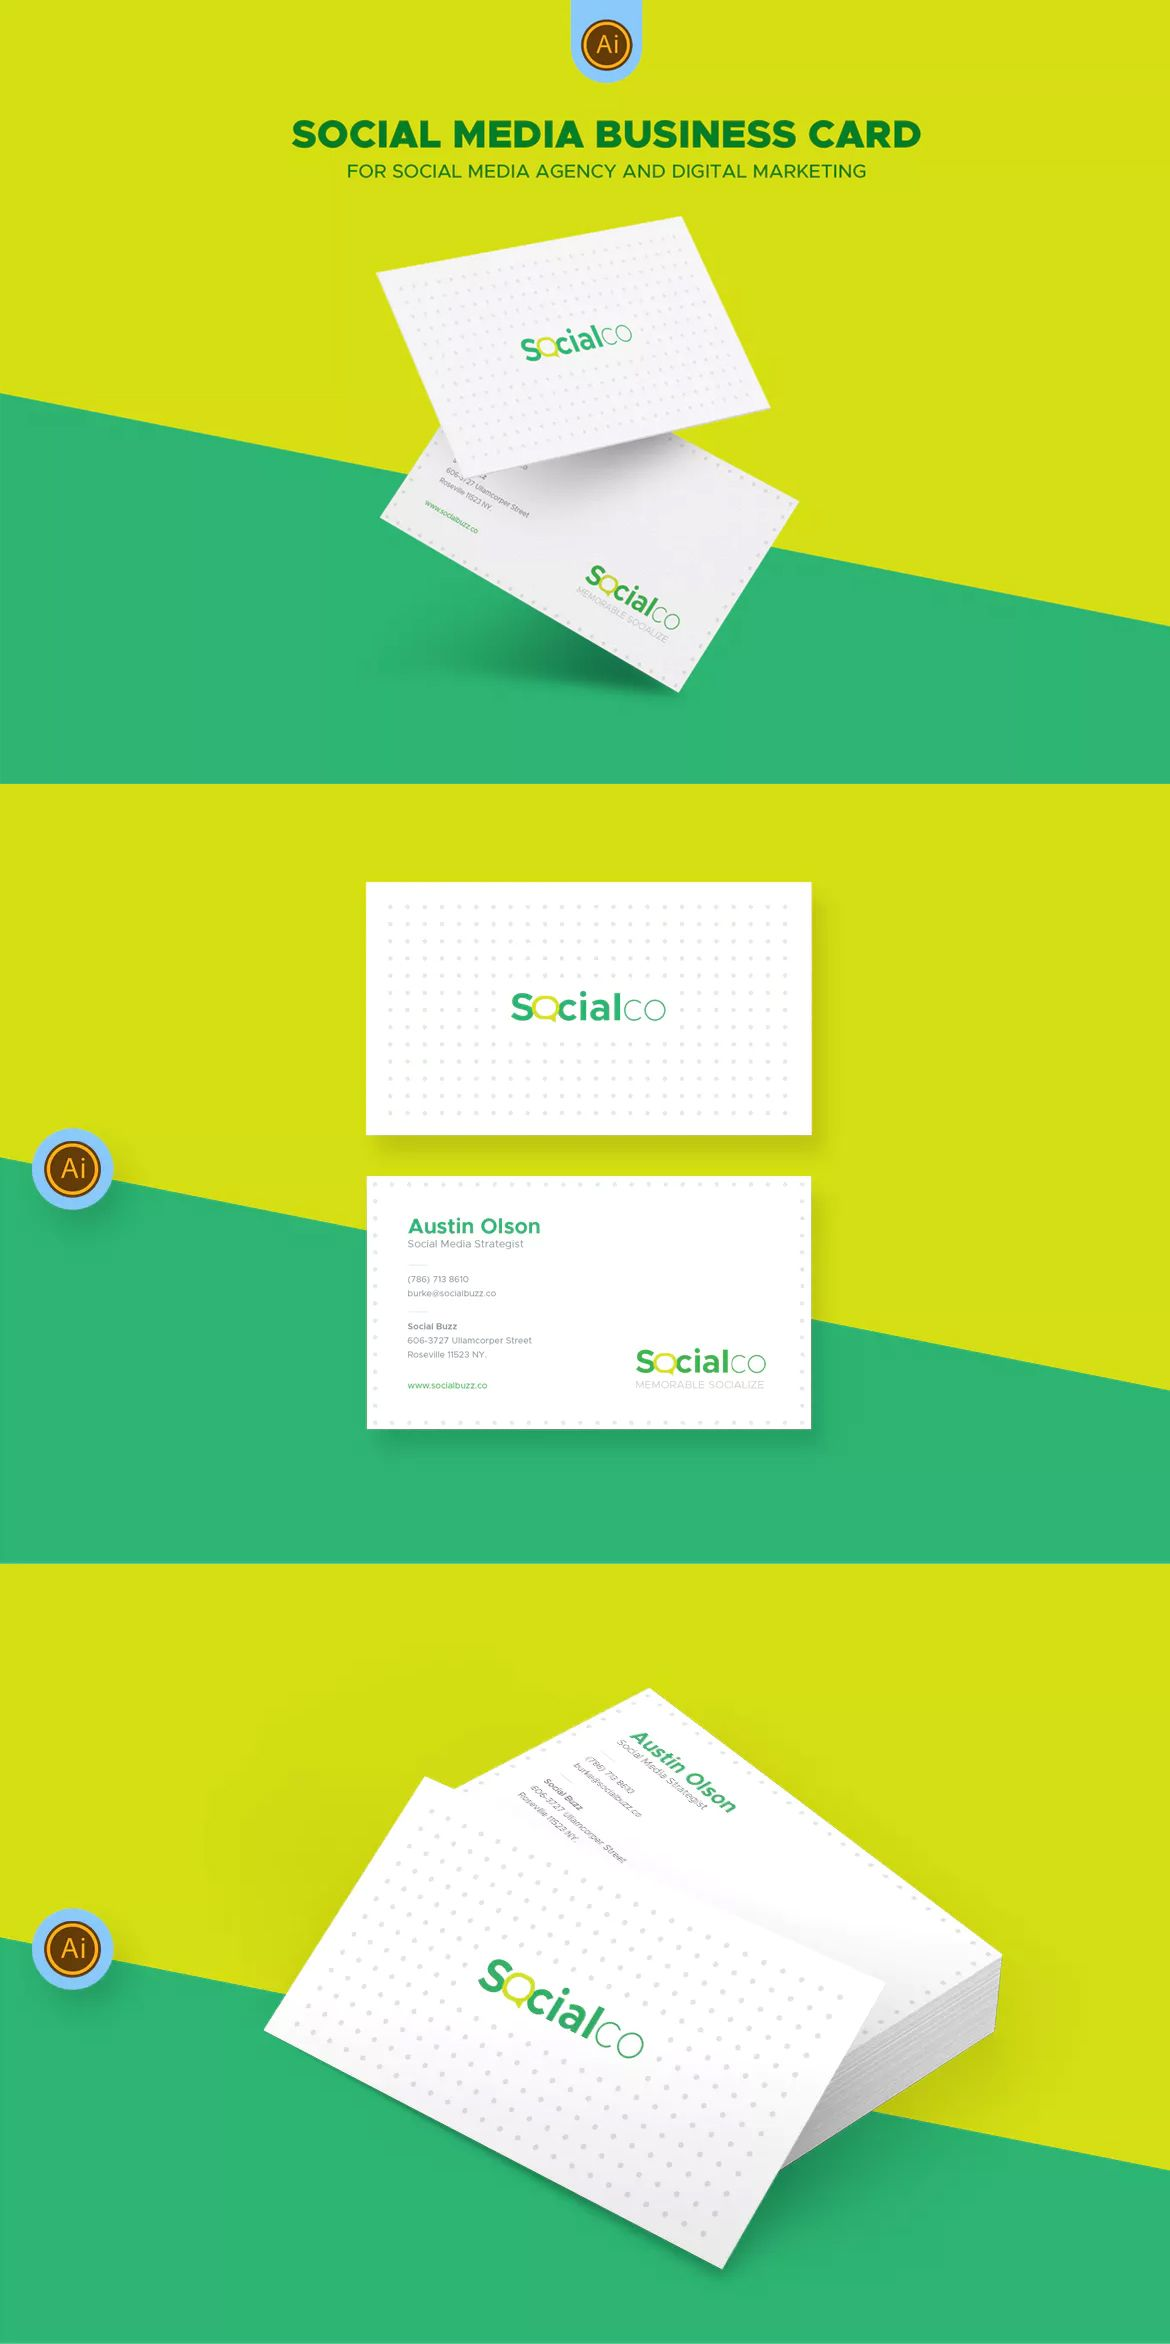 Social Media Business Card Template AI, EPS | Business Card ...